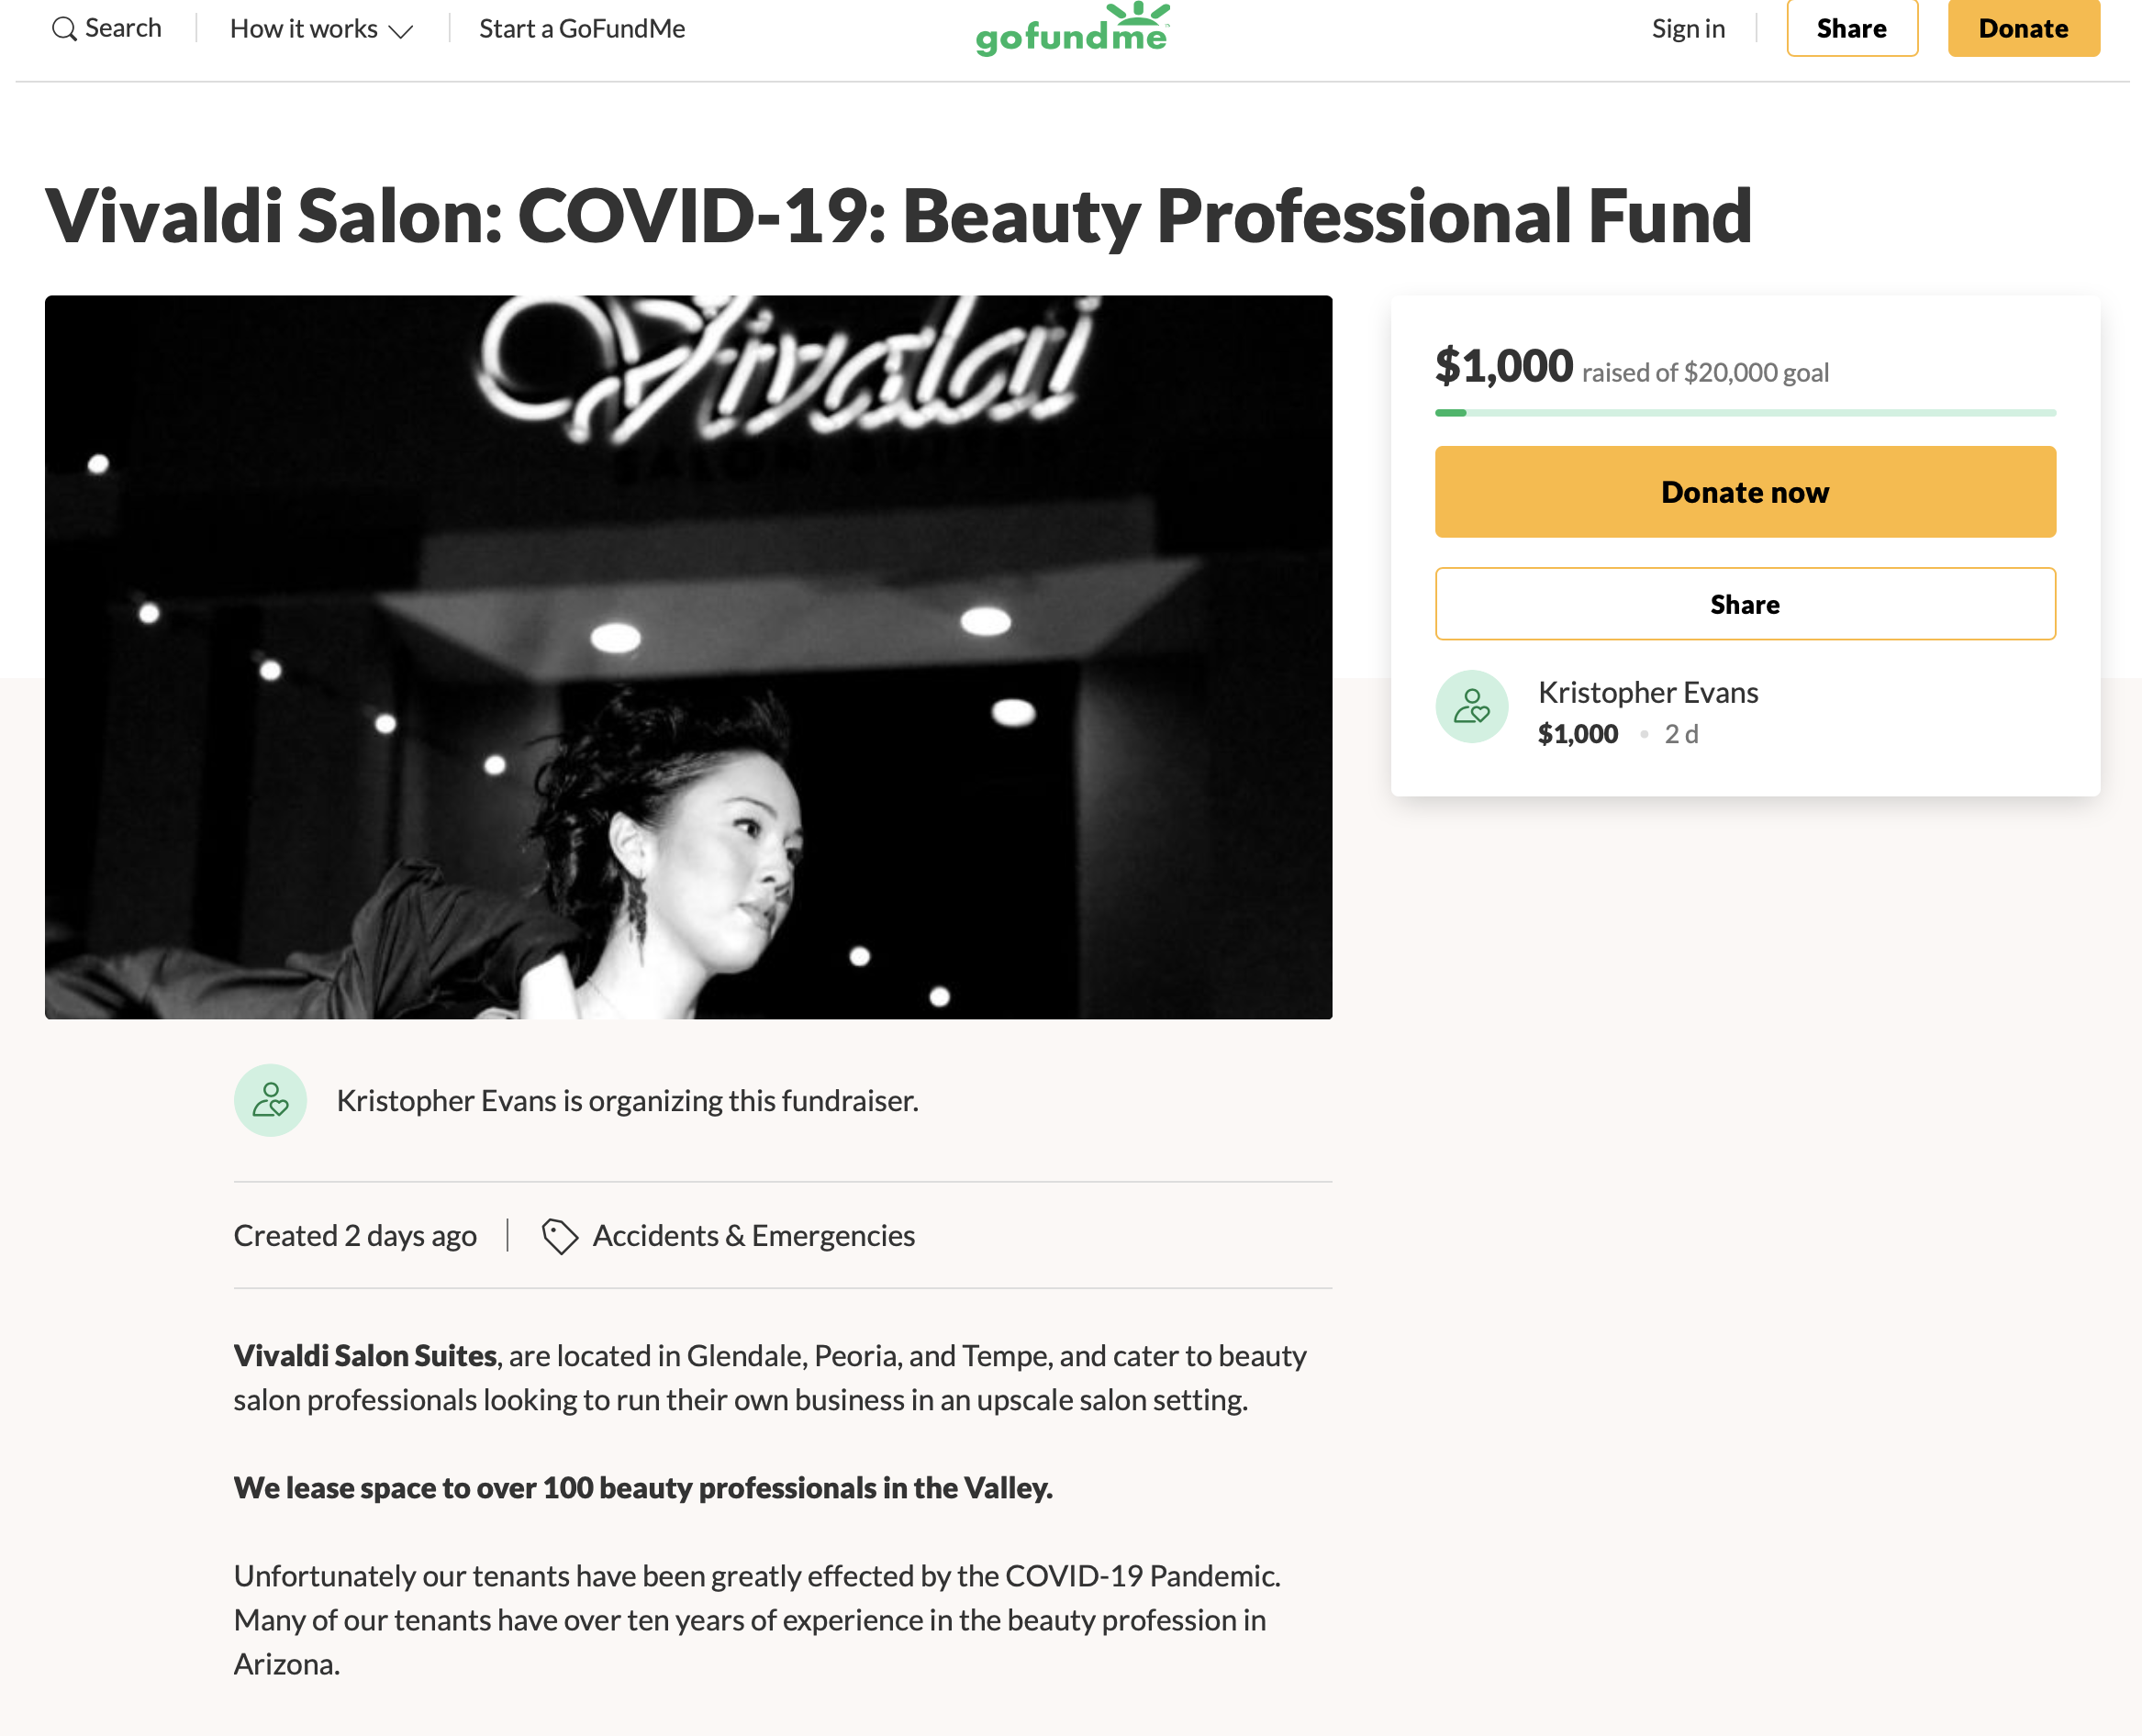 Vivaldi Salon: COVID-19: Beauty Professional Fund